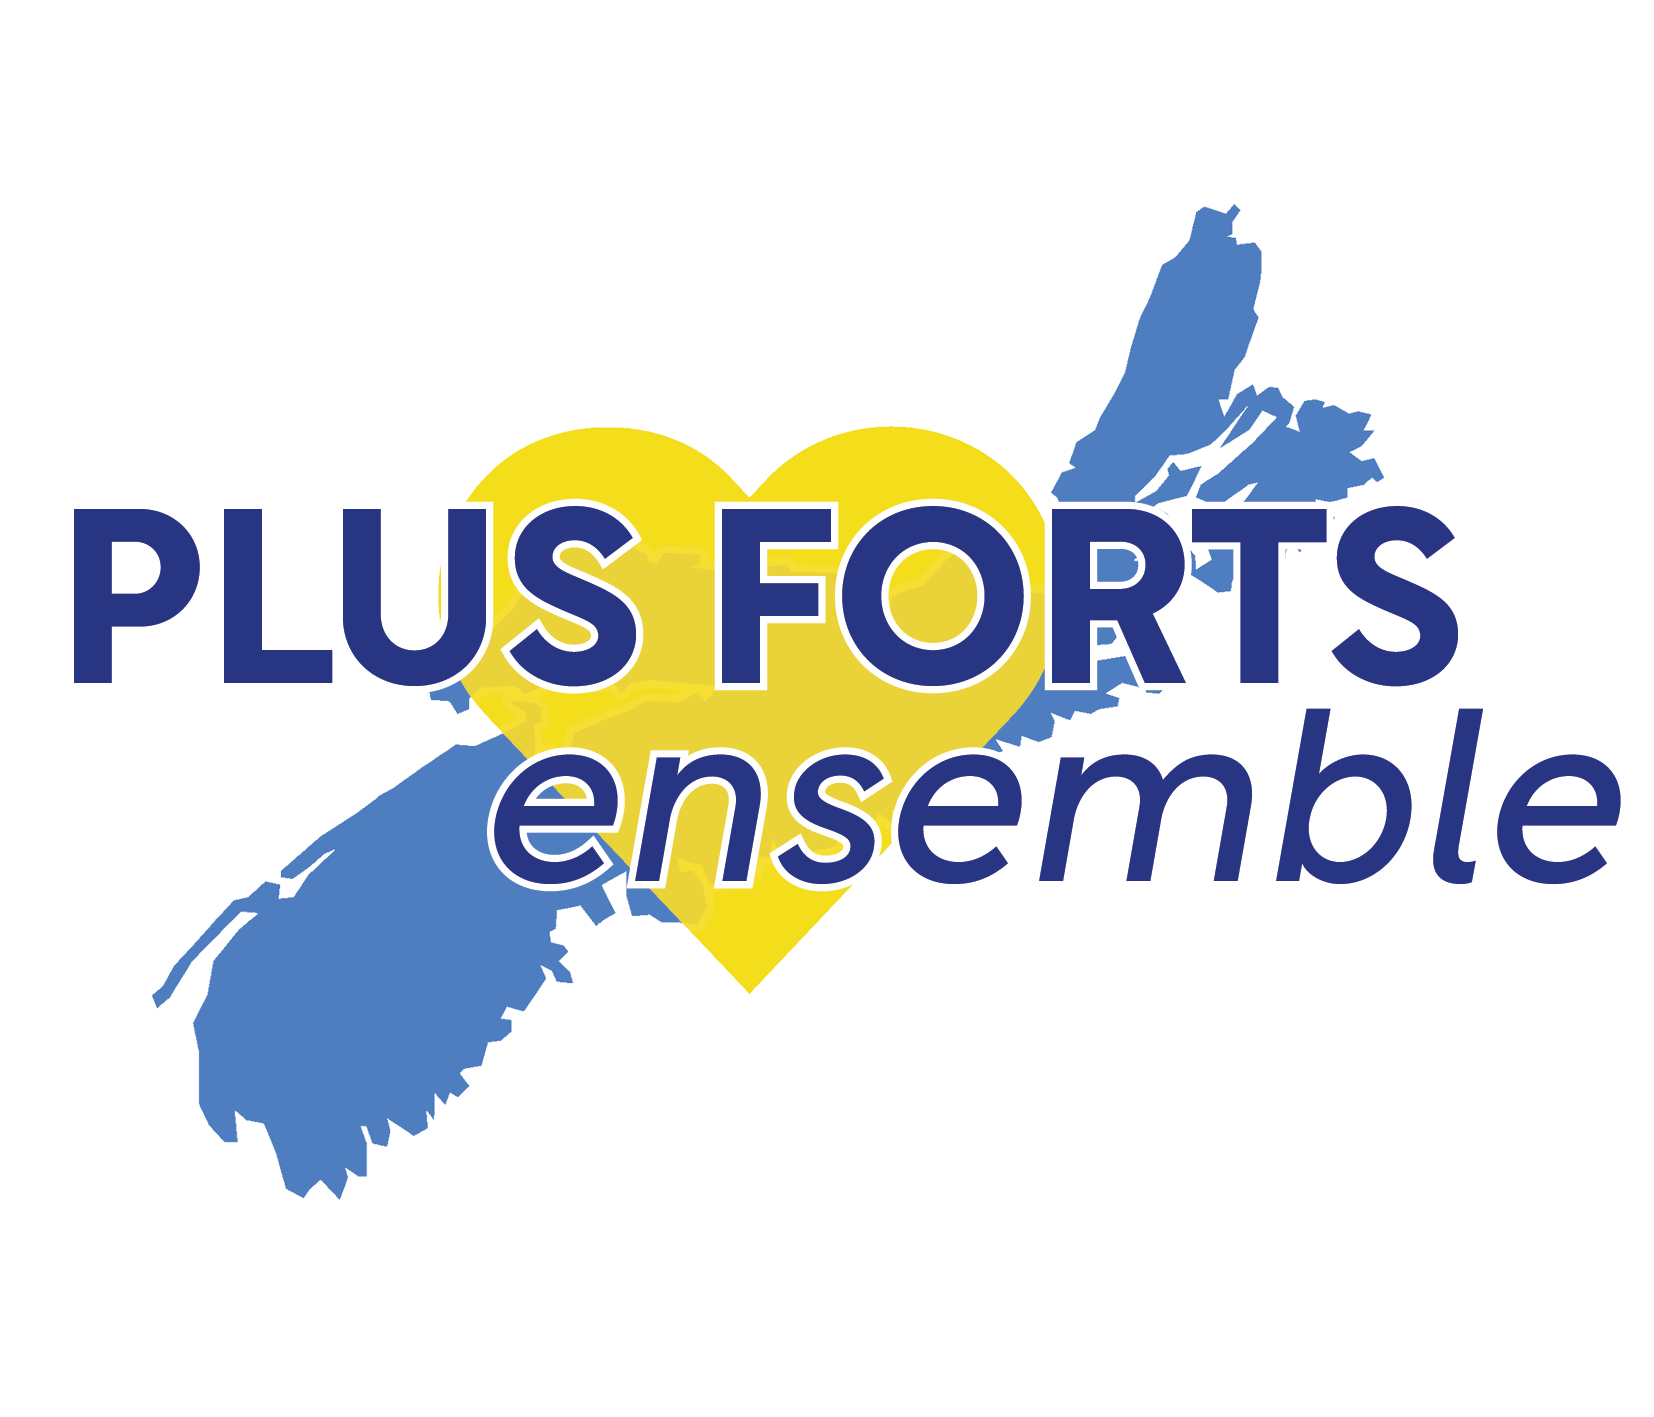 plus forts ensemble